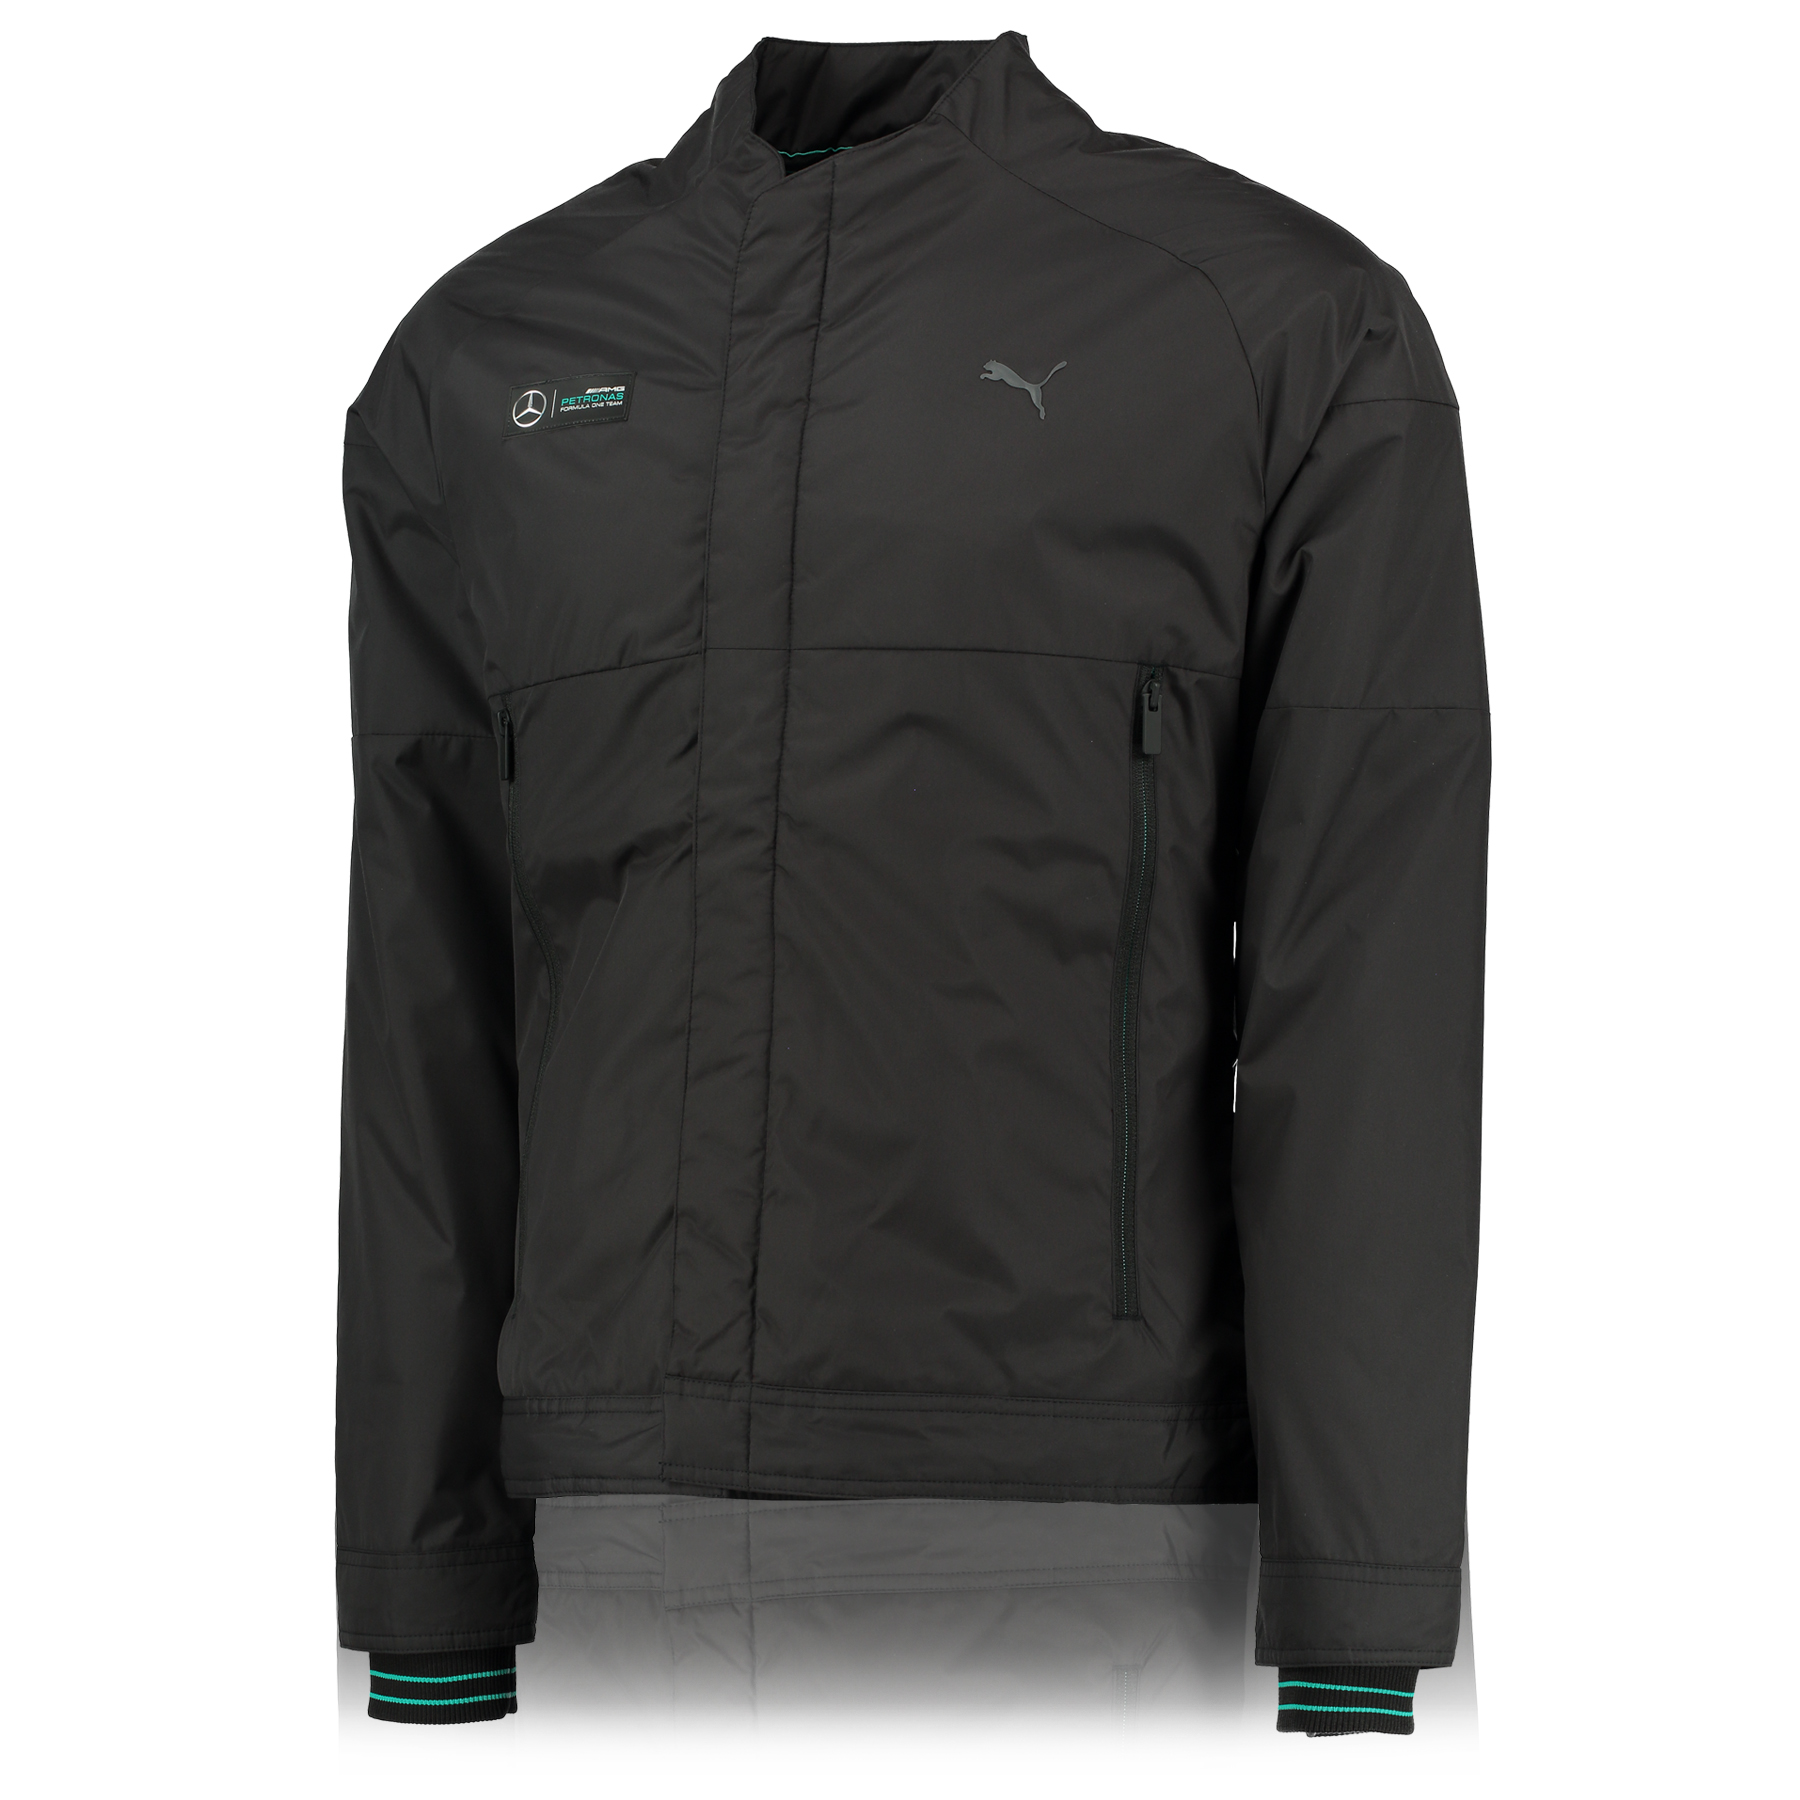 Buy Cheap Mercedes Jacket Compare Men S Outerwear Prices